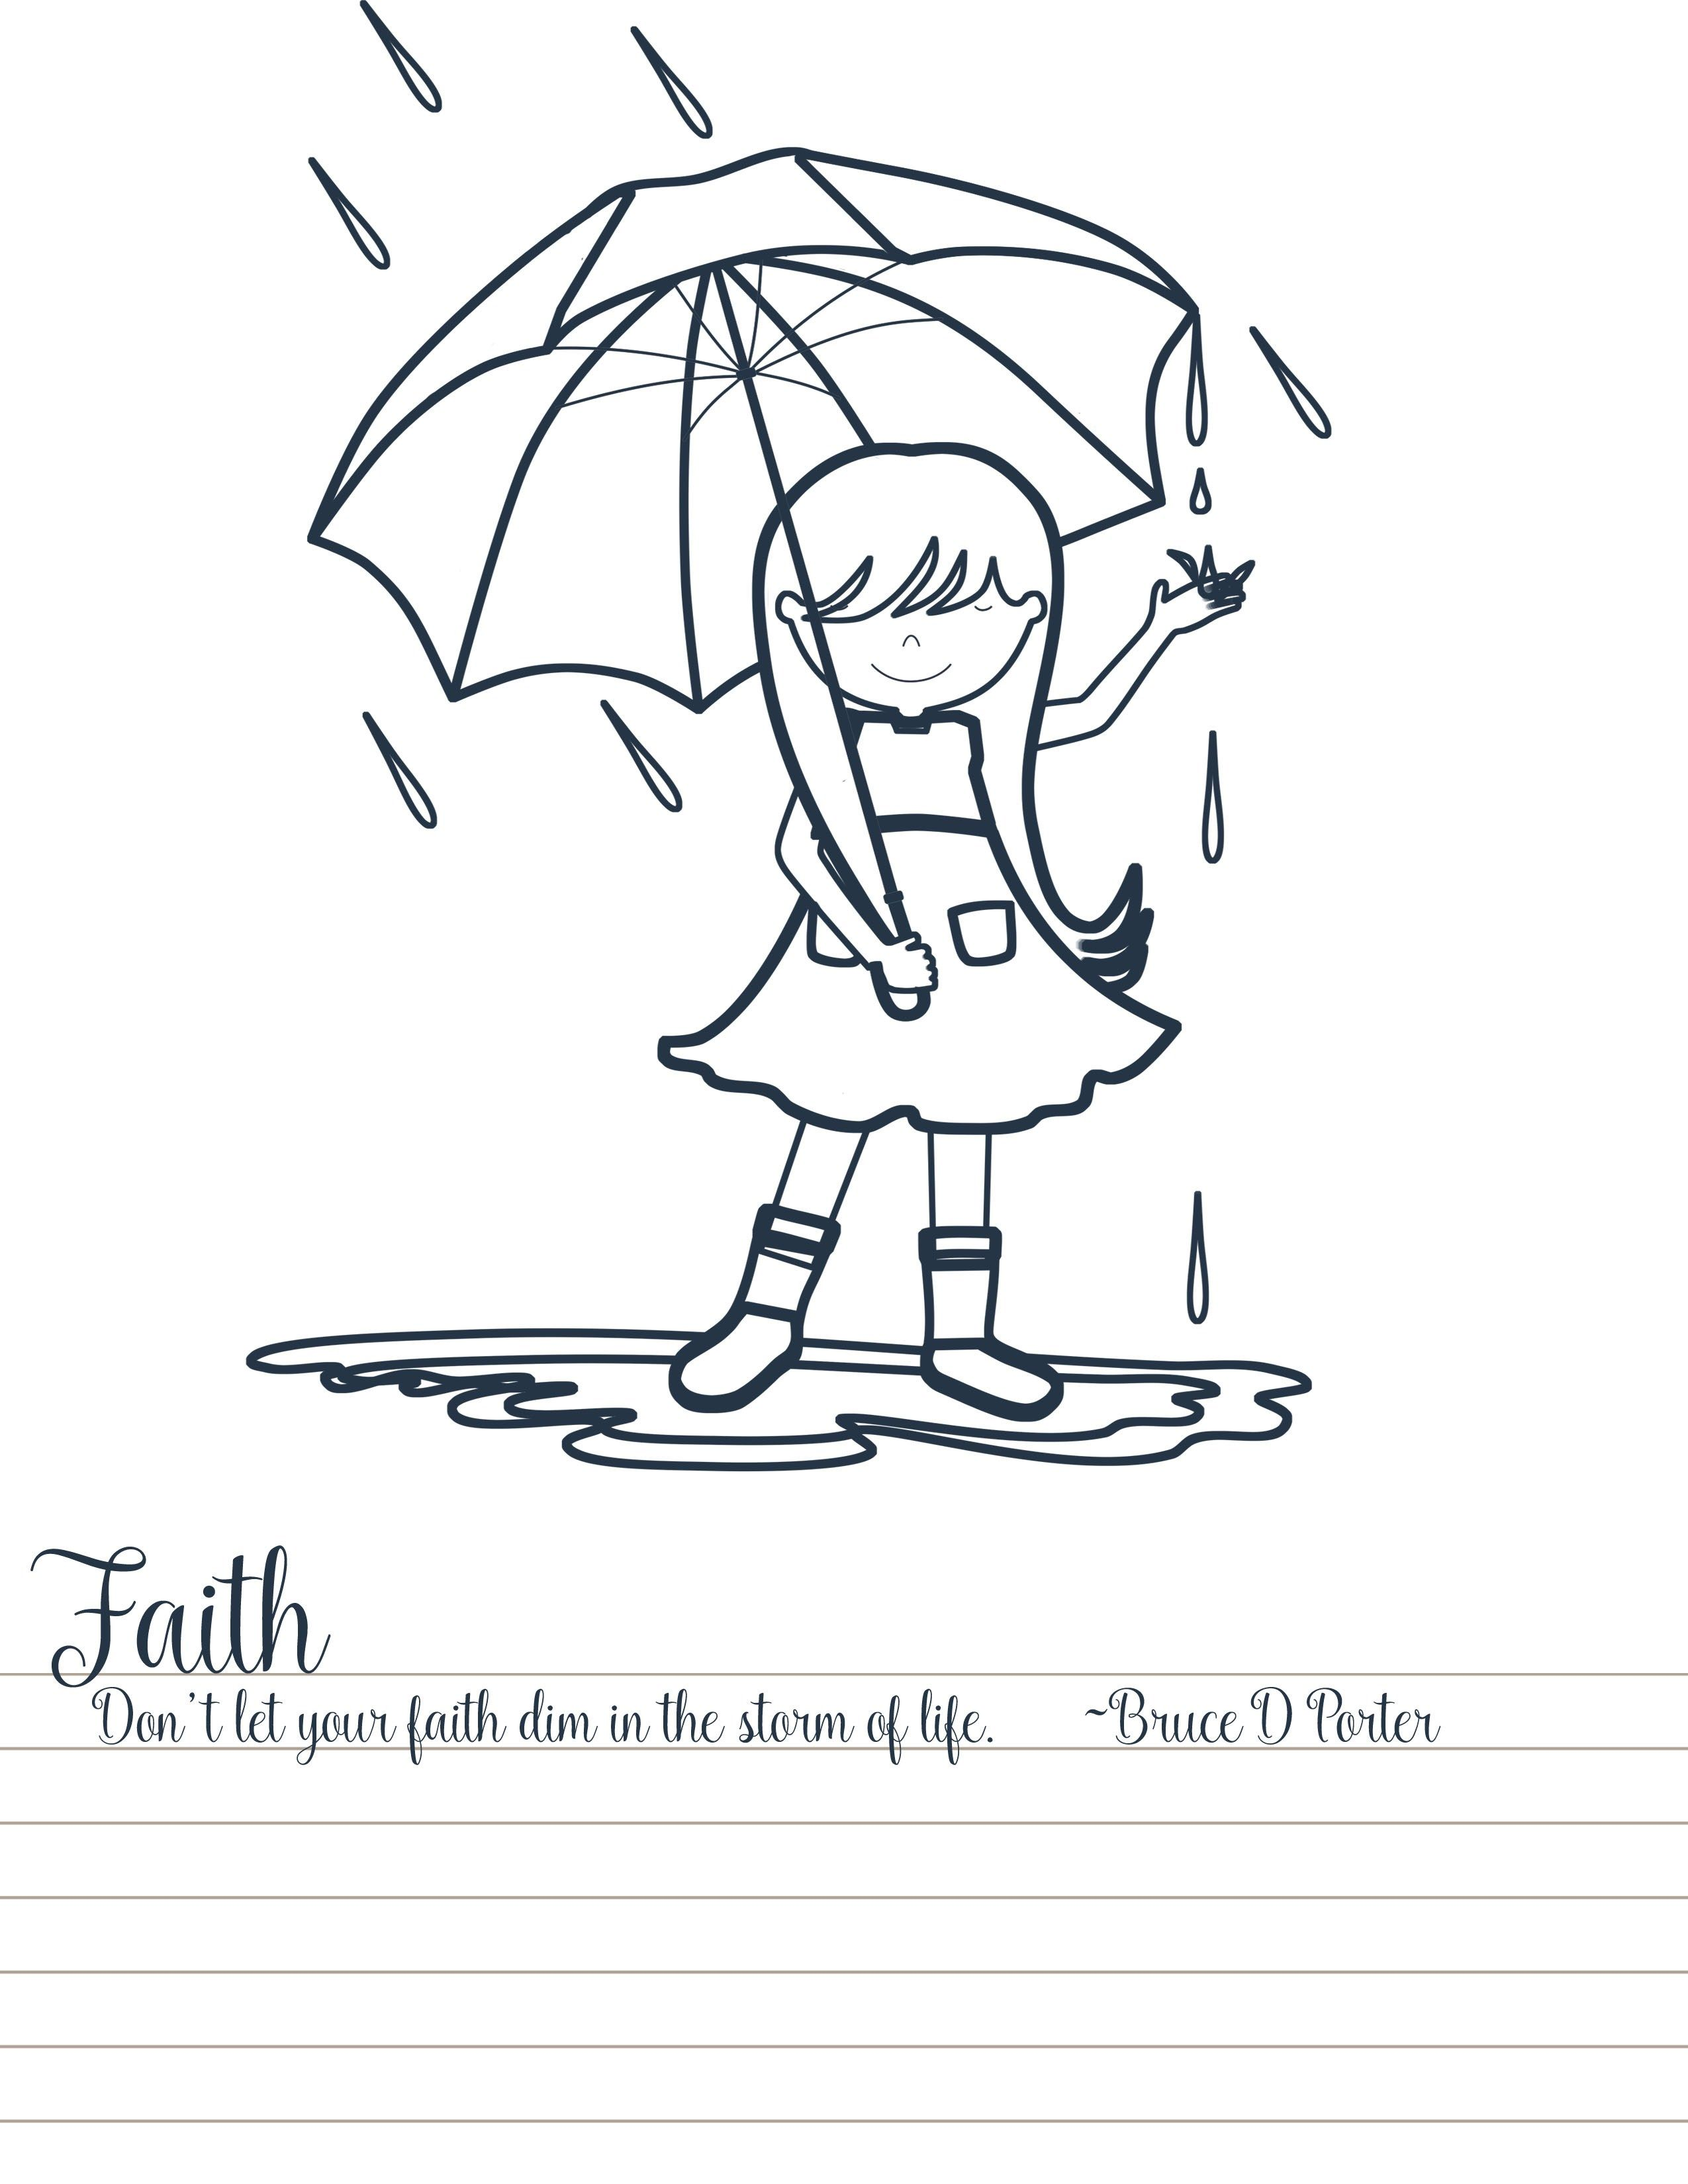 Faith-in-the-Storm-Coloring-Page.jpg 2,550×3,300 pixels | YW | Pinterest